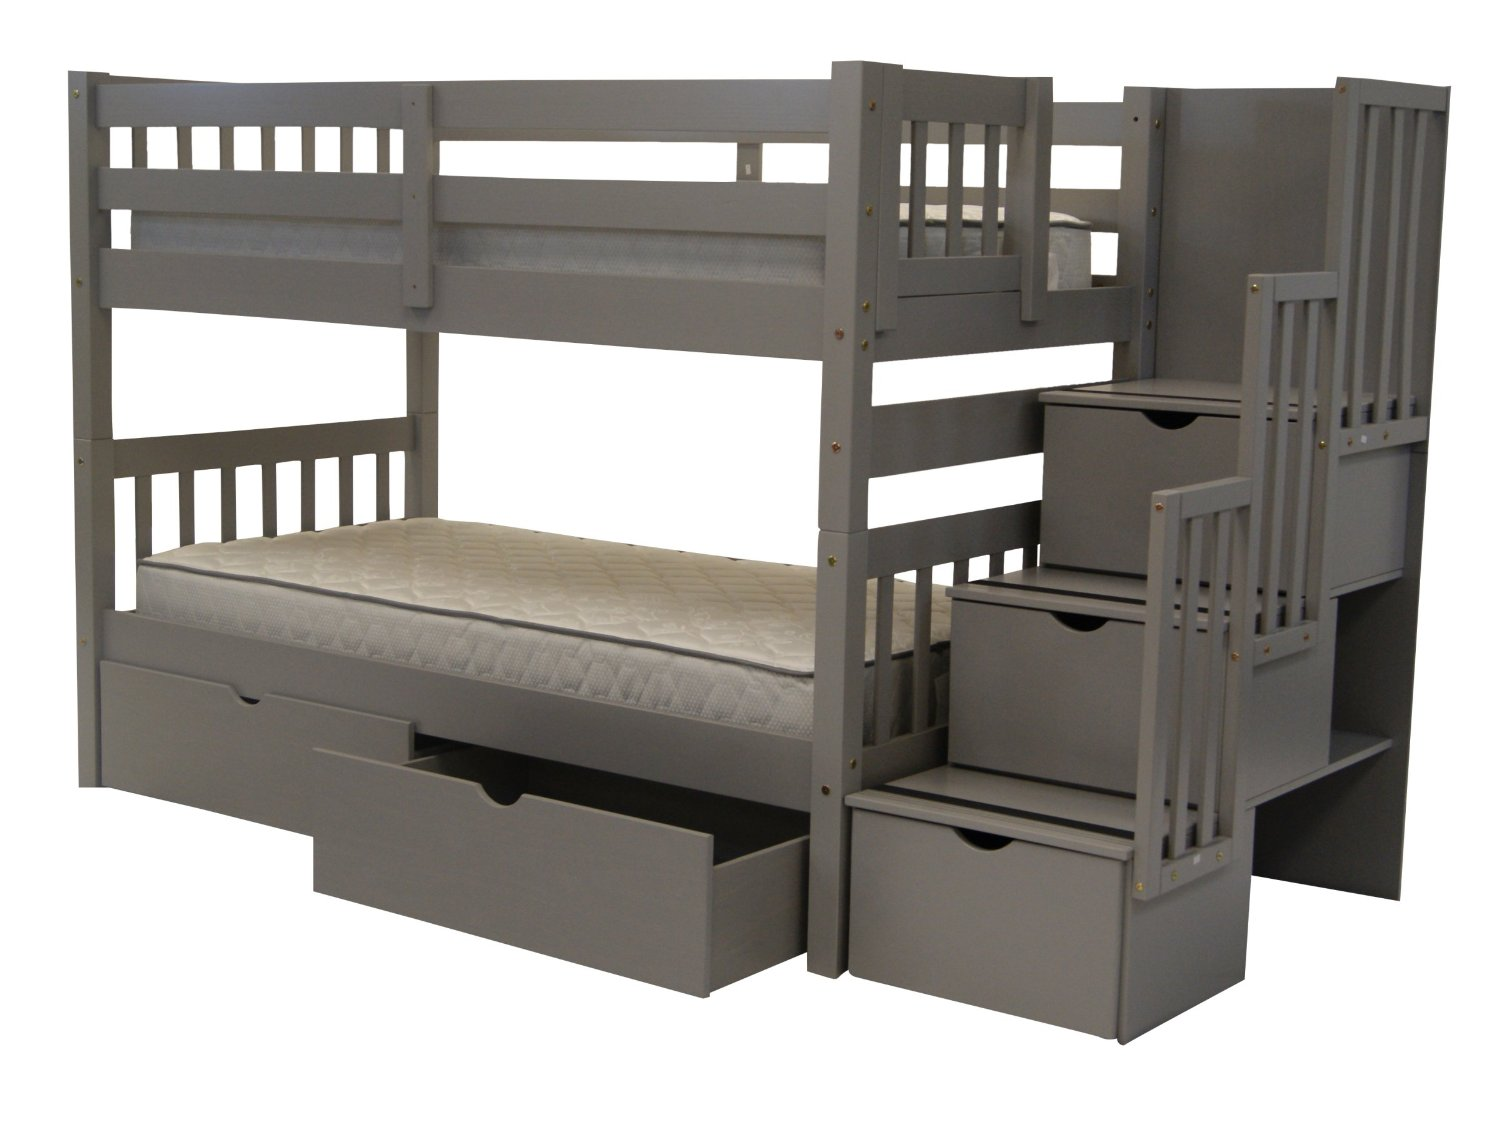 Get Quotations · Bedz King Stairway Bunk Beds Twin Over Twin With 3 Drawers  In The Steps And 2